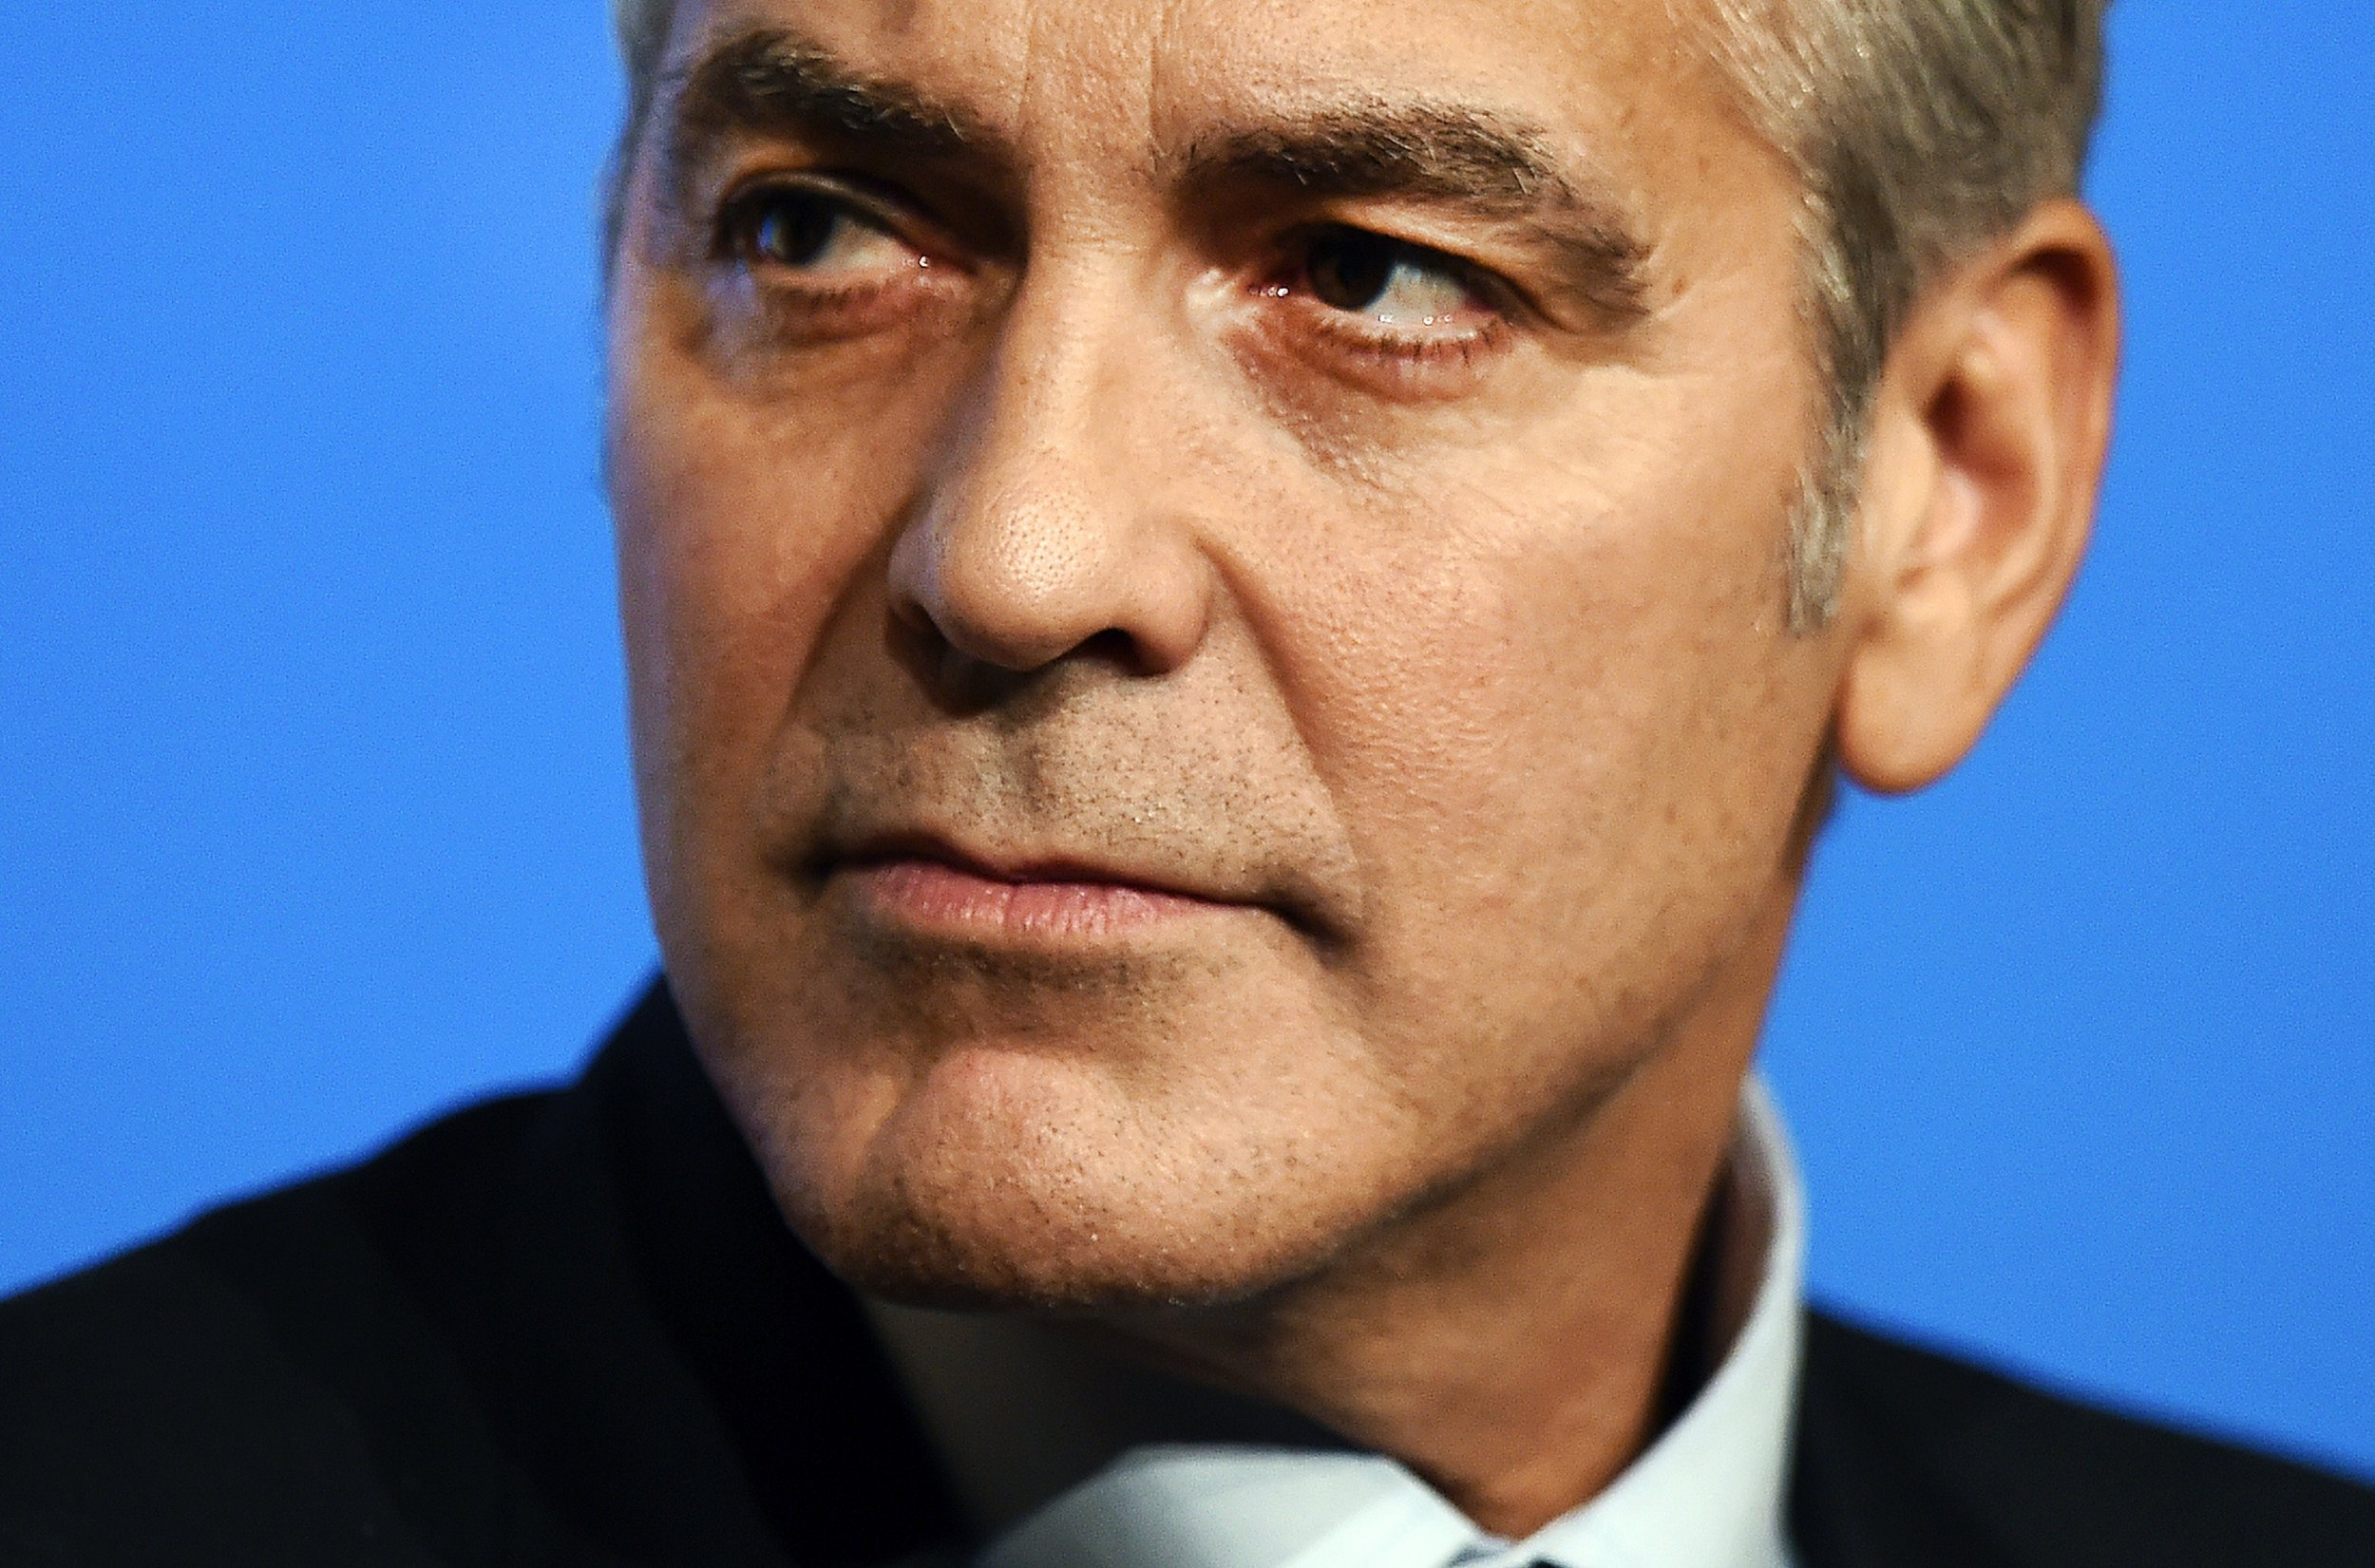 George Clooney, the most beautiful man?